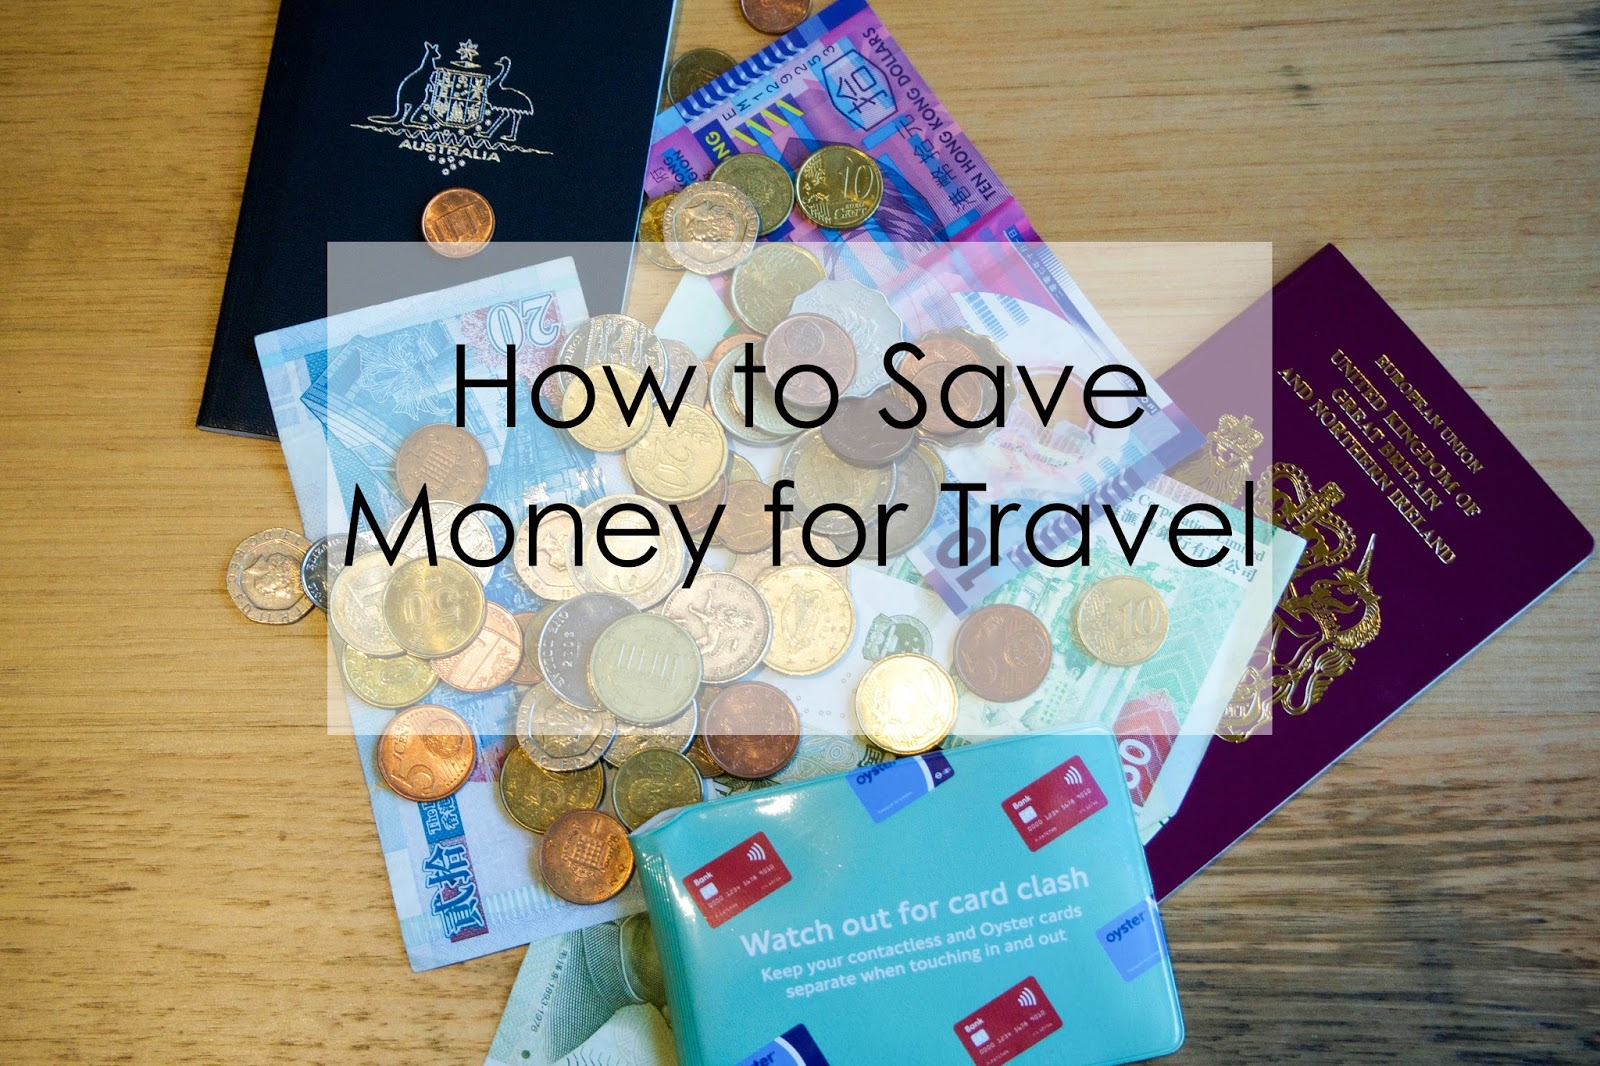 how to save money for travel, ways to save money for travel, saving money, travel